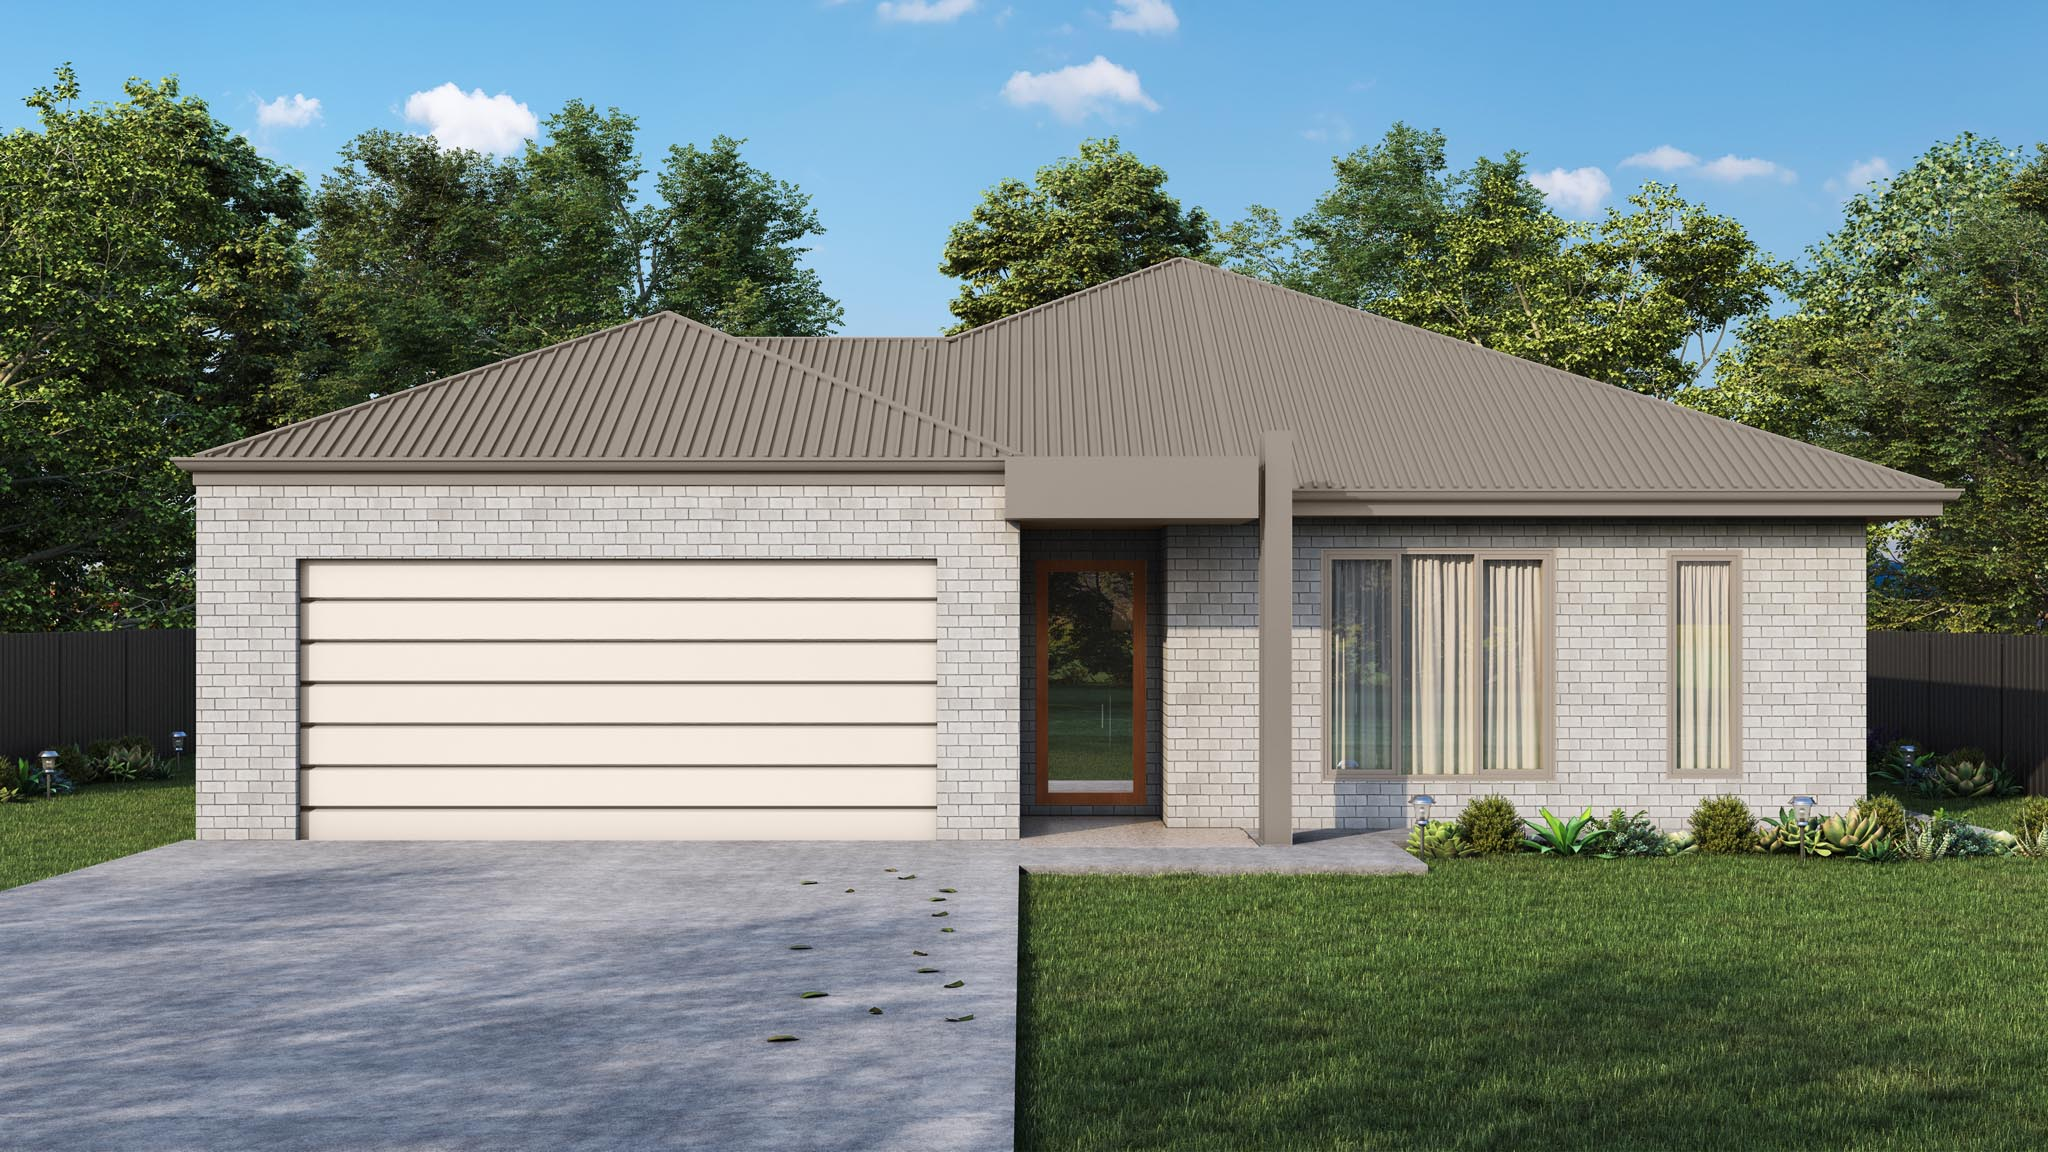 Lot 132 Clifton Gardens - Griffith Real Estate Agents - JZ Homes